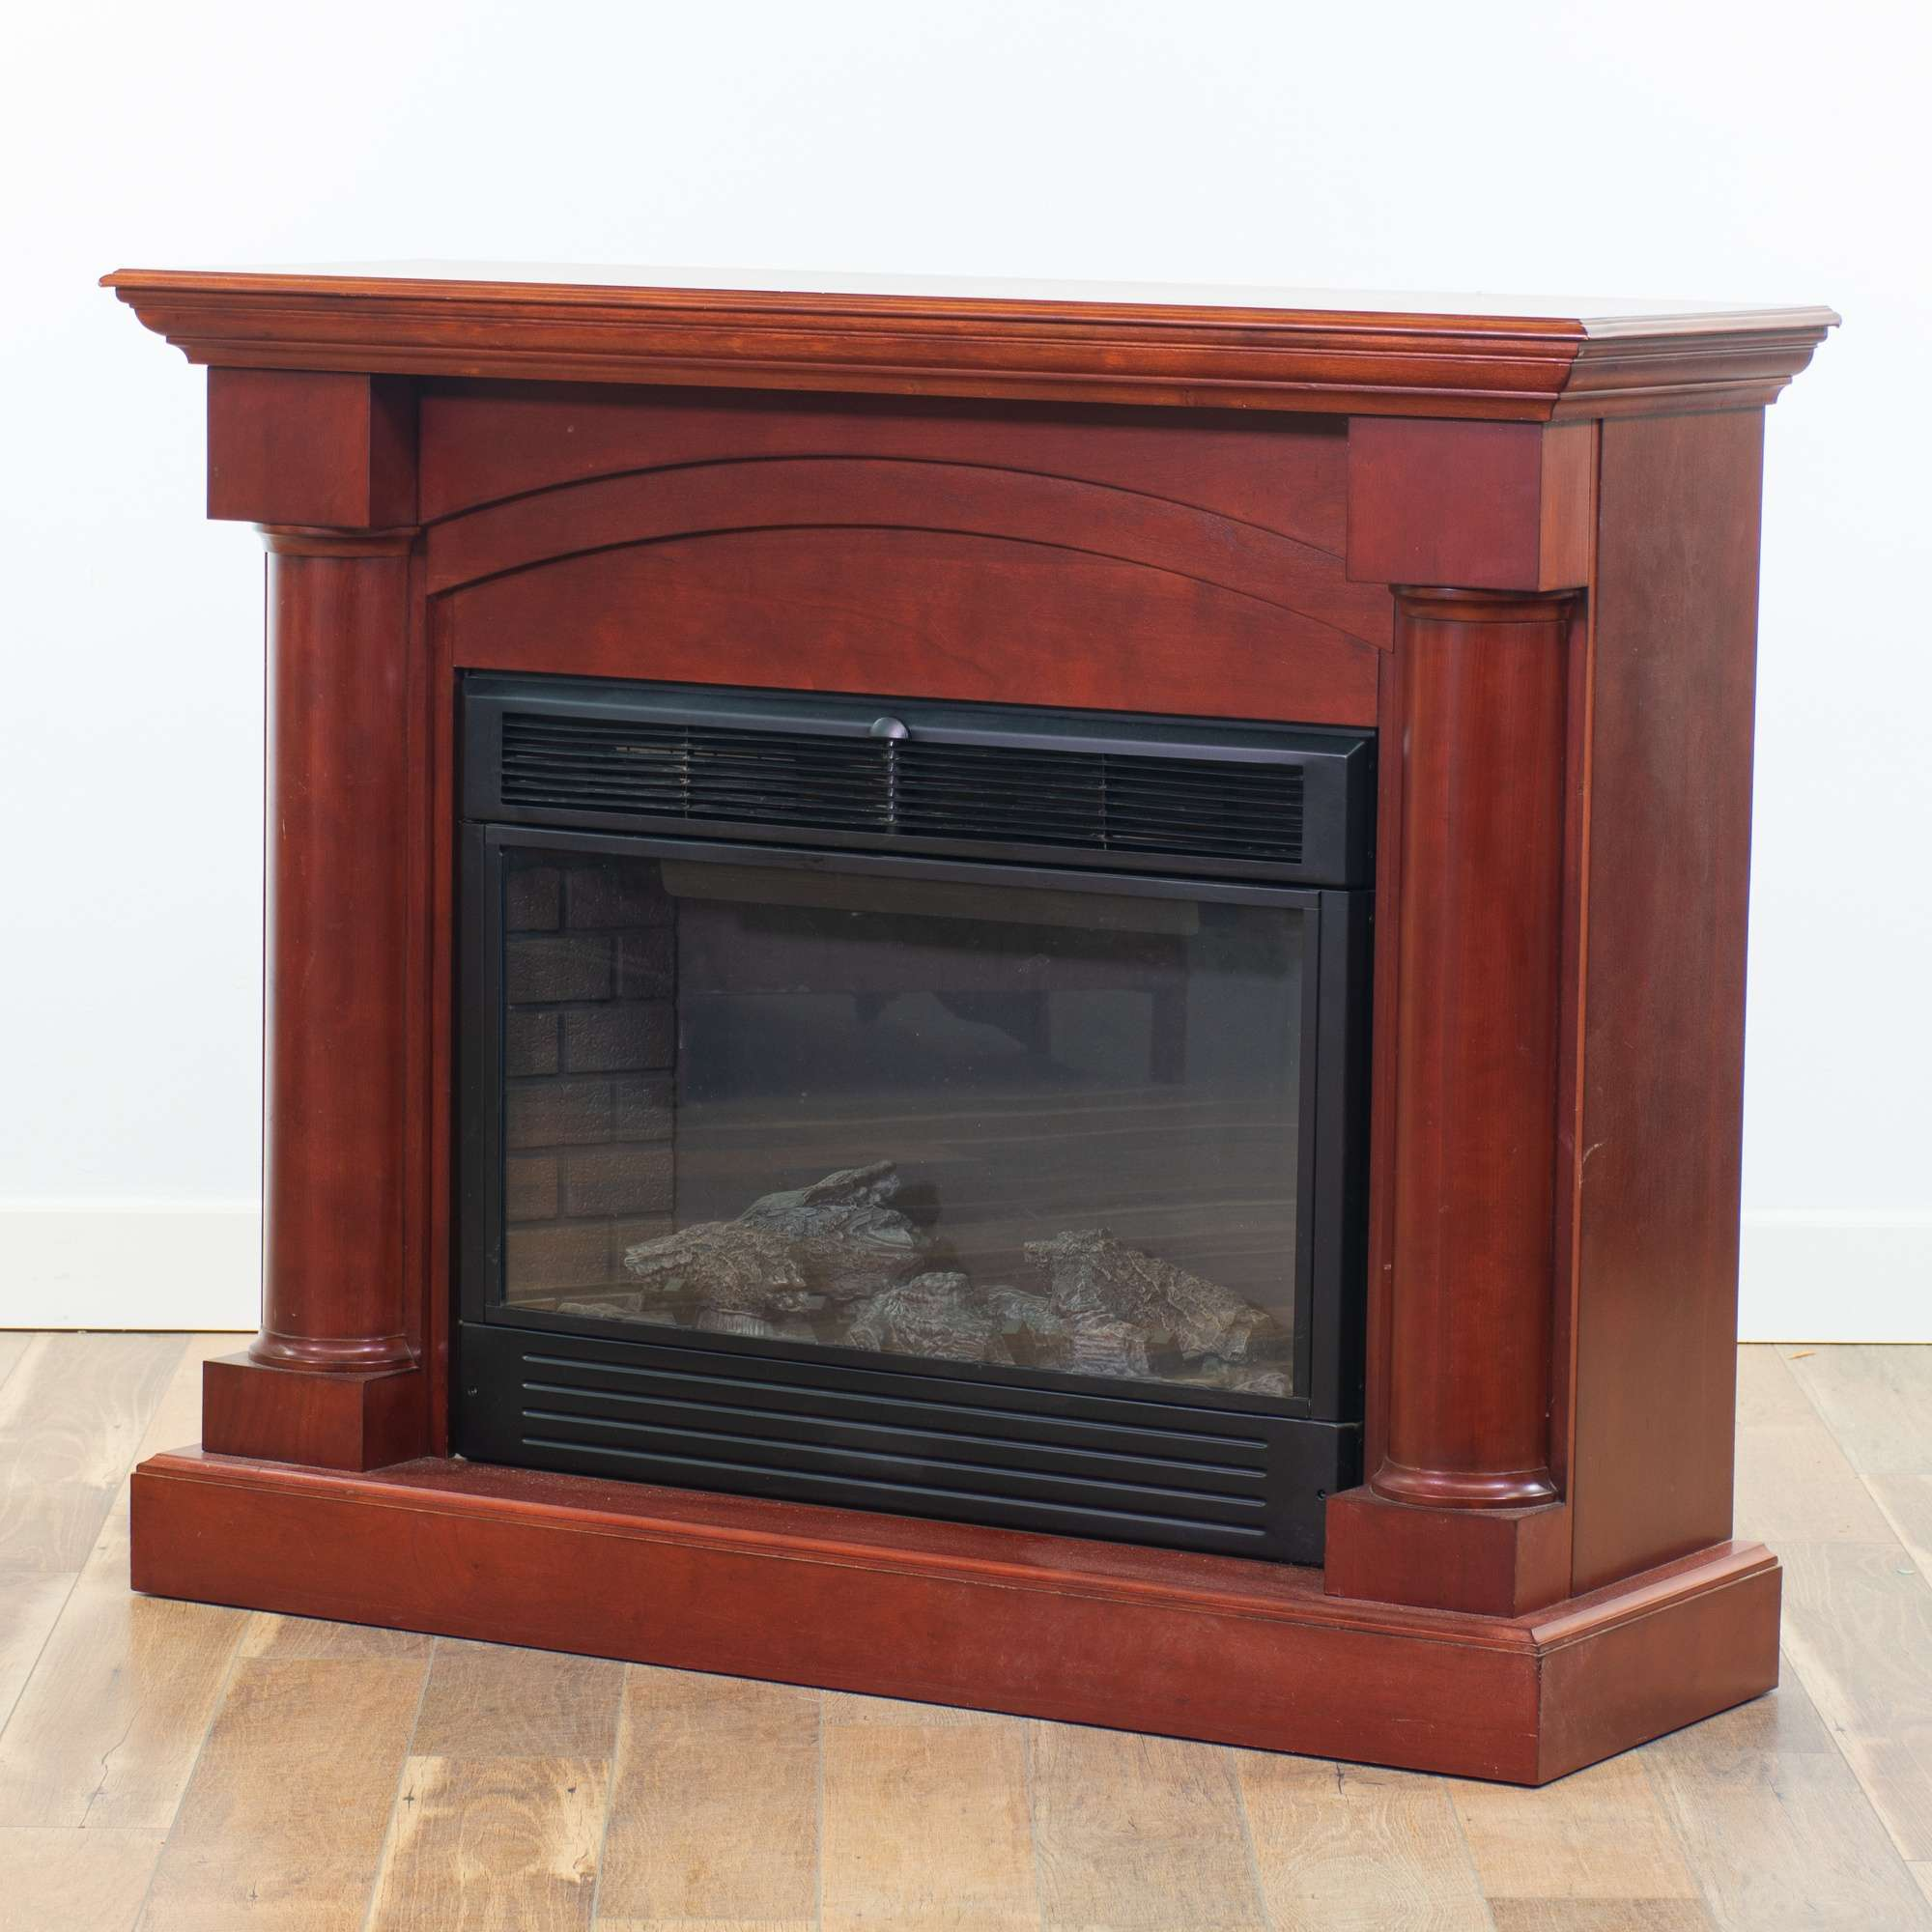 Electric 120v Fireplace Space Heater Loveseat Vintage